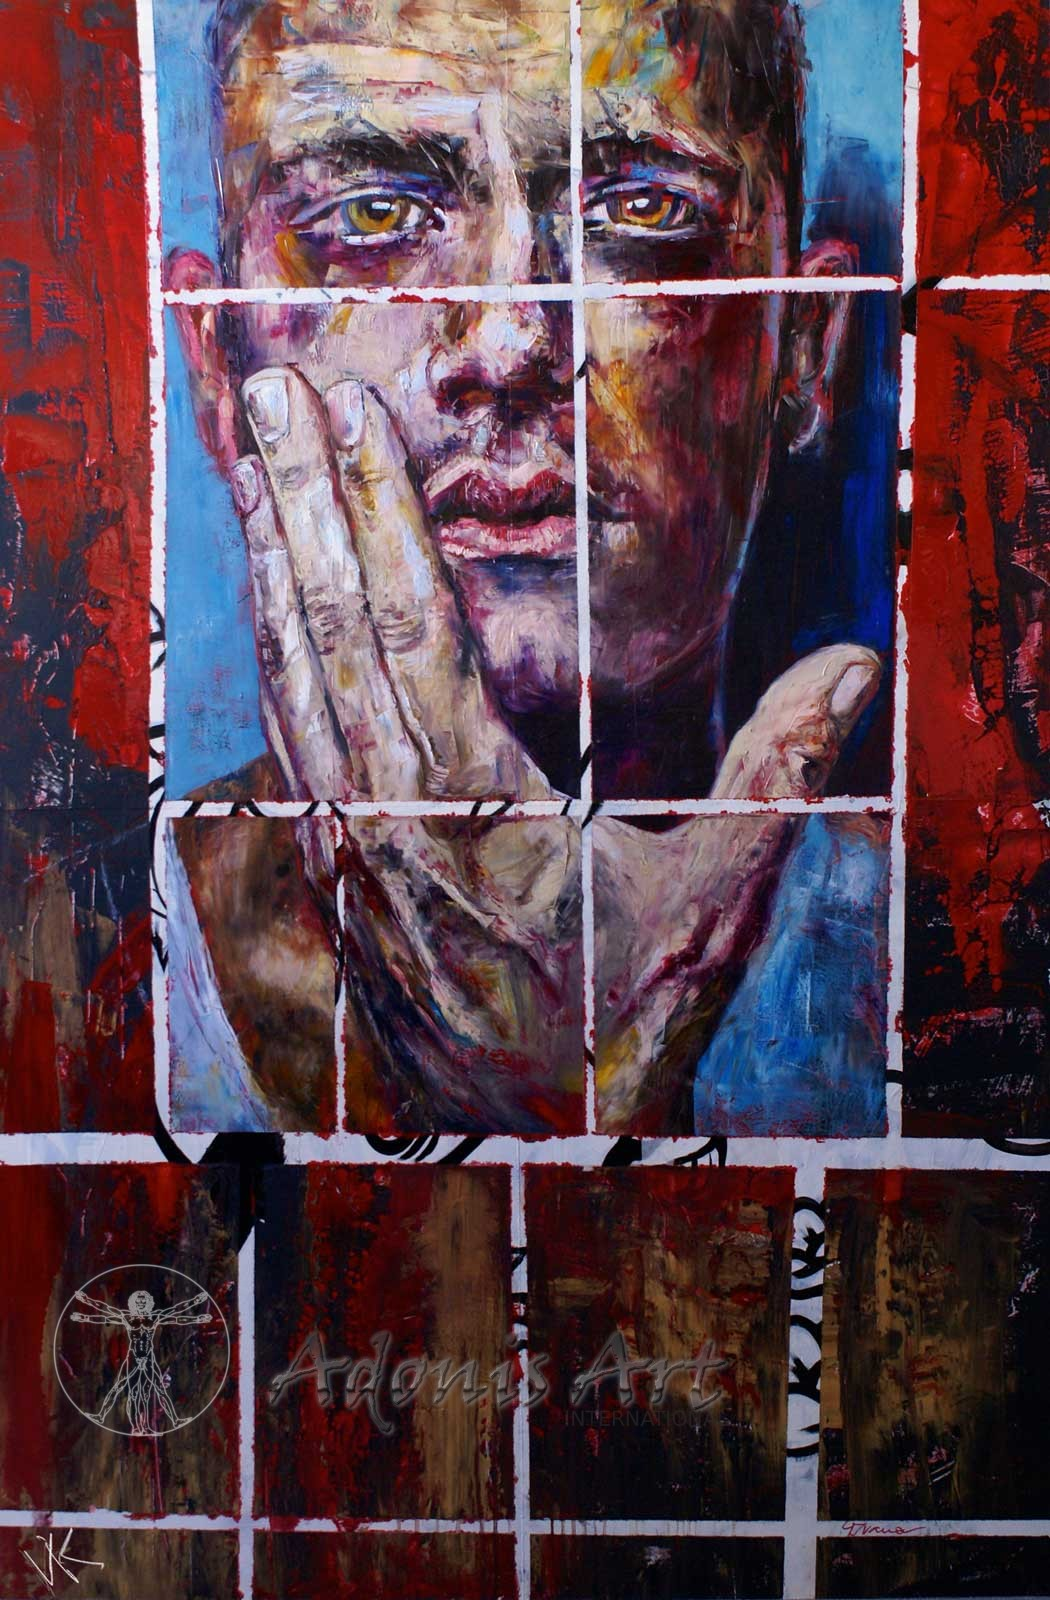 'Behind Bars' by Vik Gorbatoff